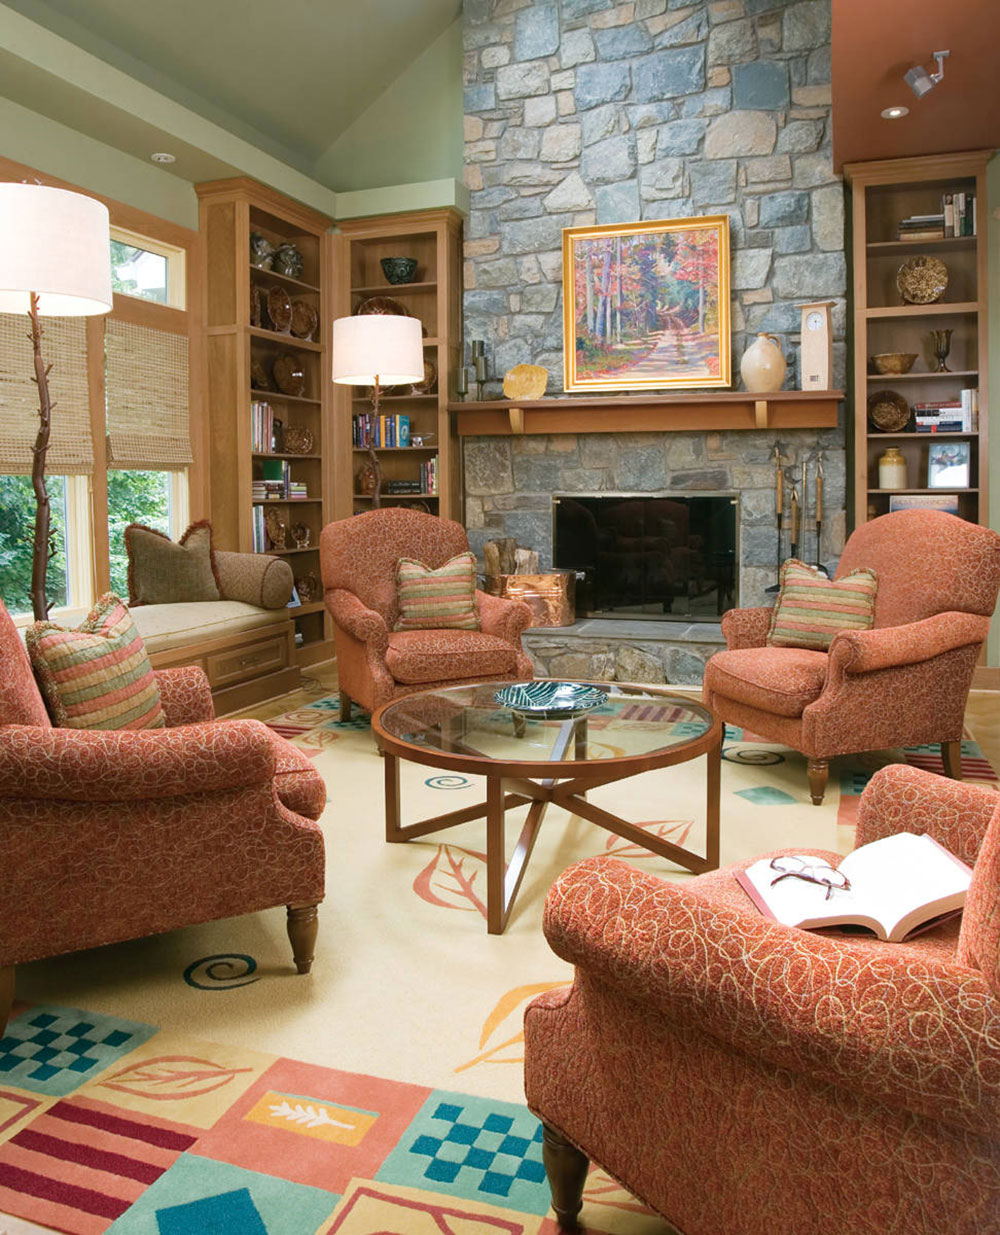 How to Make a Living Room Look Bigger12 How to Make a Living Room Look Bigger